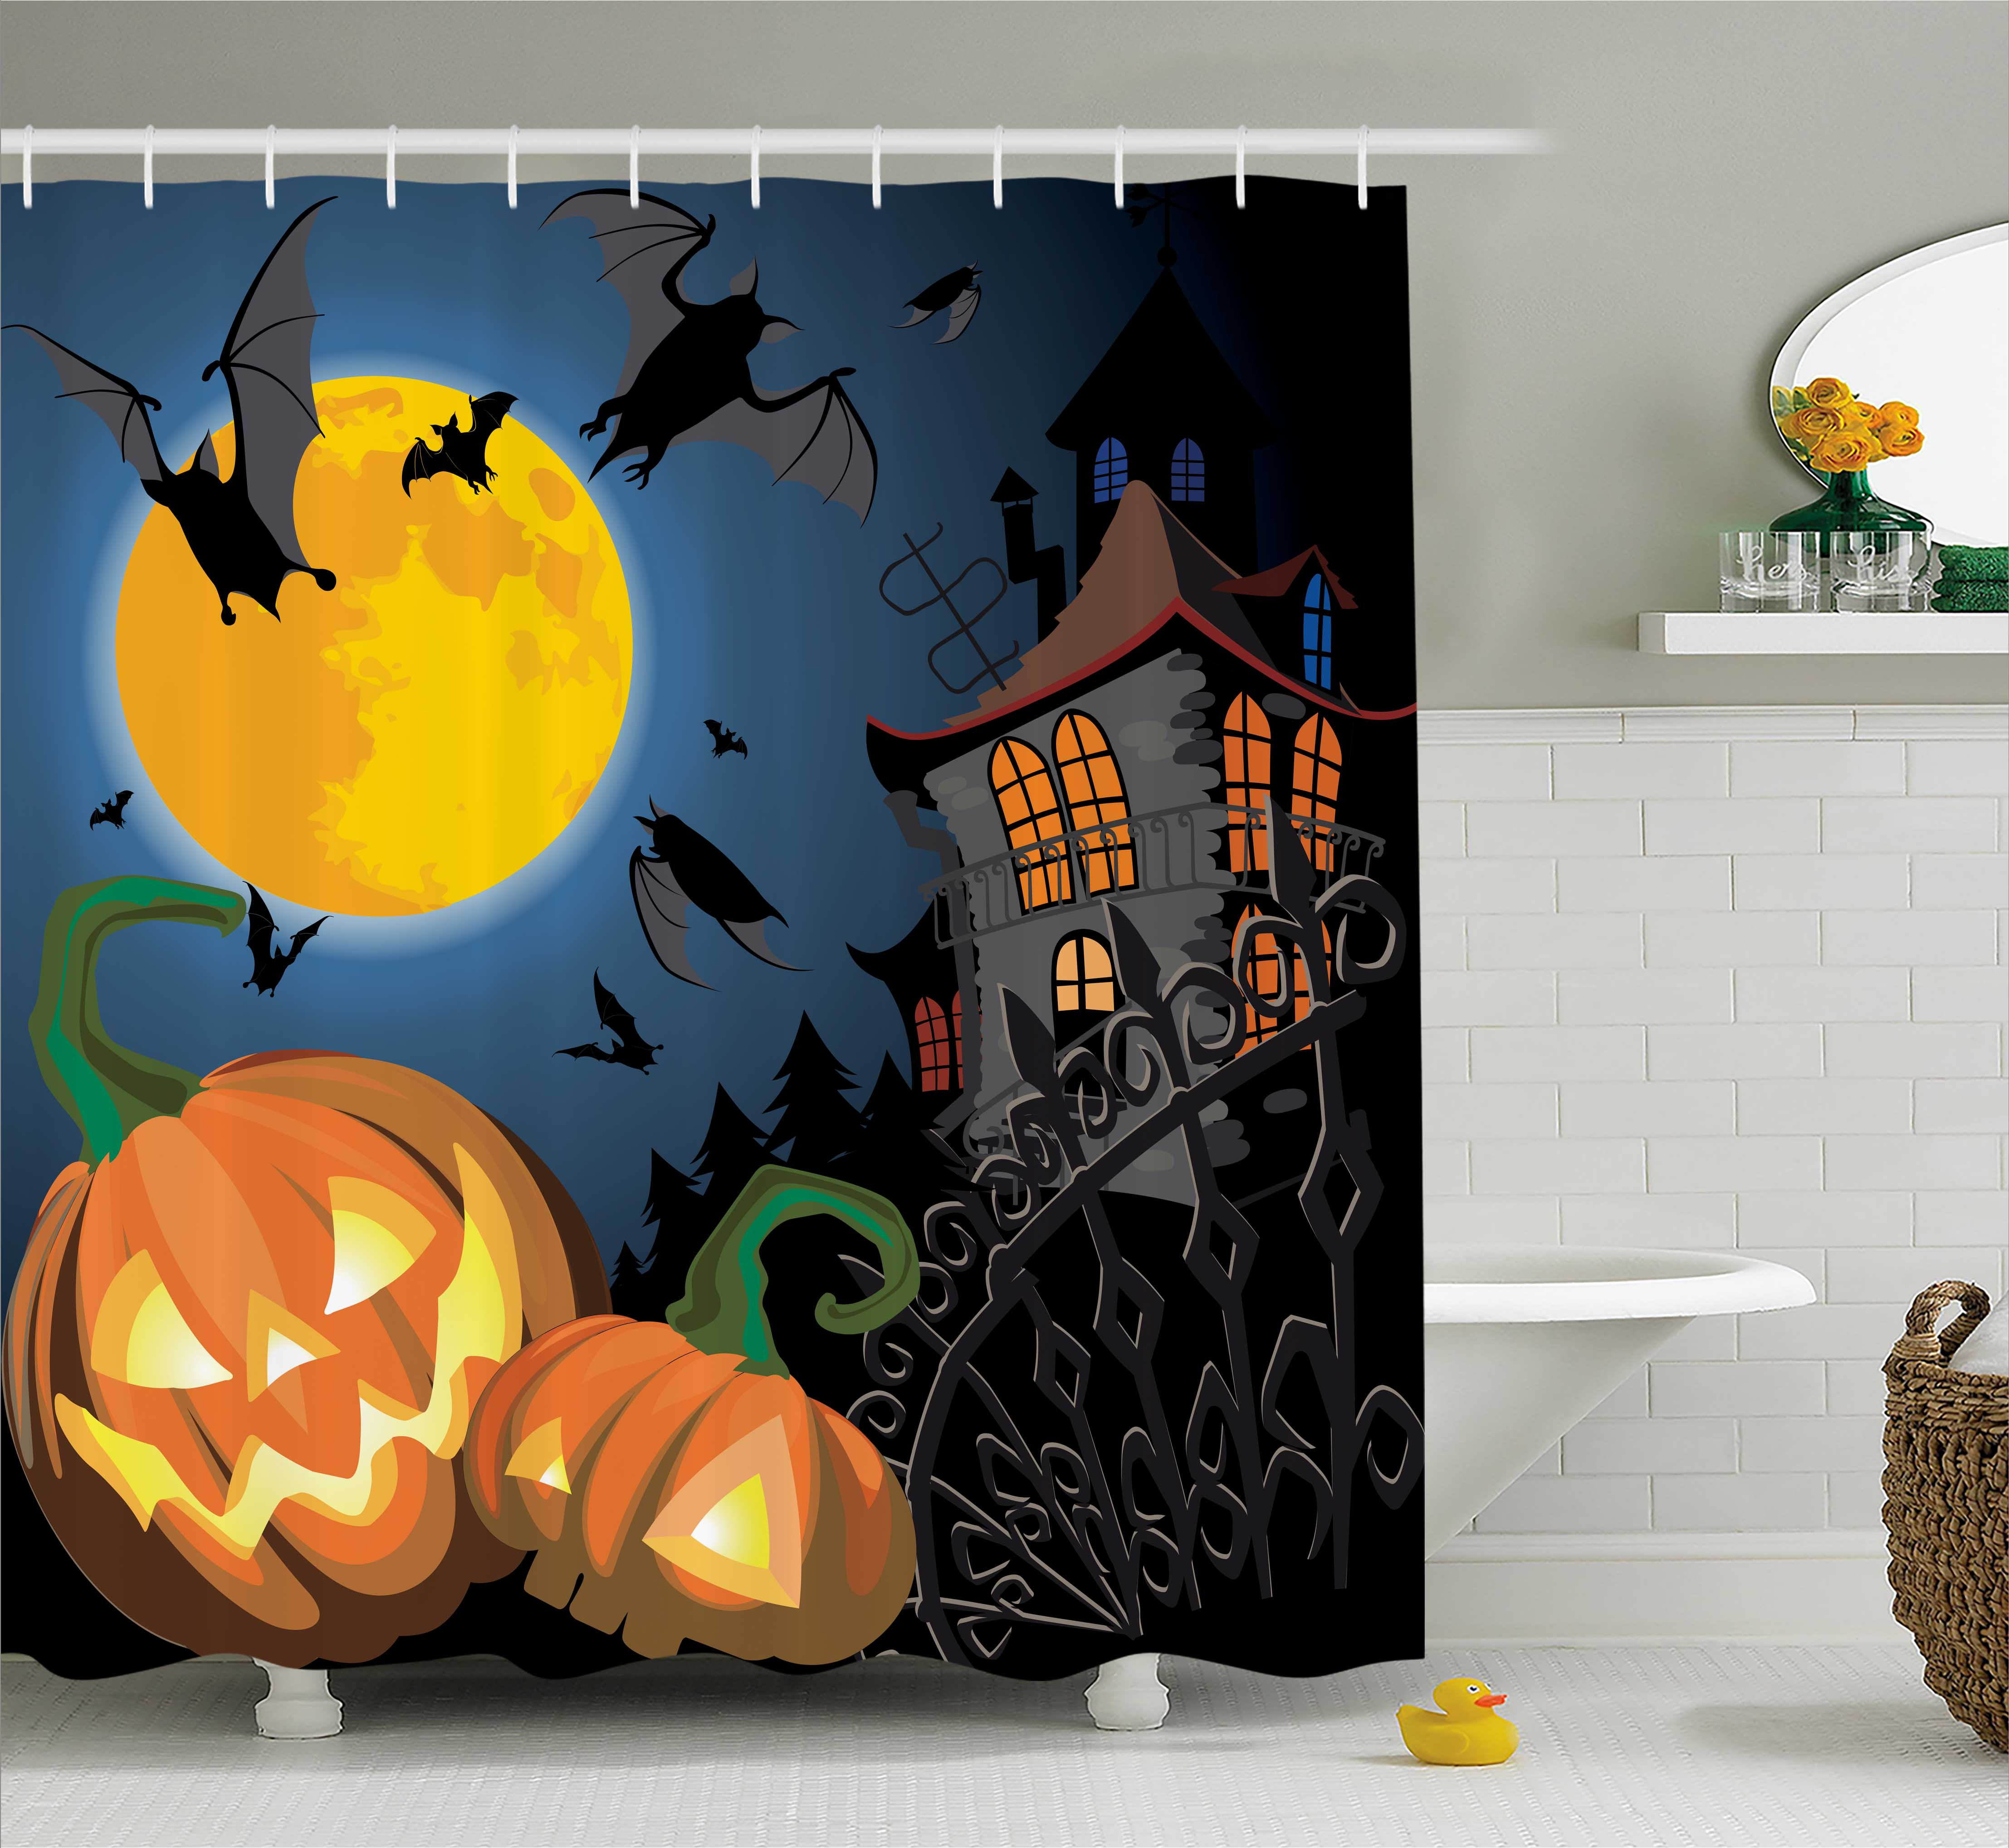 Halloween Decorations Shower Curtain, Gothic Halloween Haunted House Party Theme Decor Trick or Treat for Kids, Fabric Bathroom Set with Hooks, 69W X 70L Inches, Multi, by Ambesonne